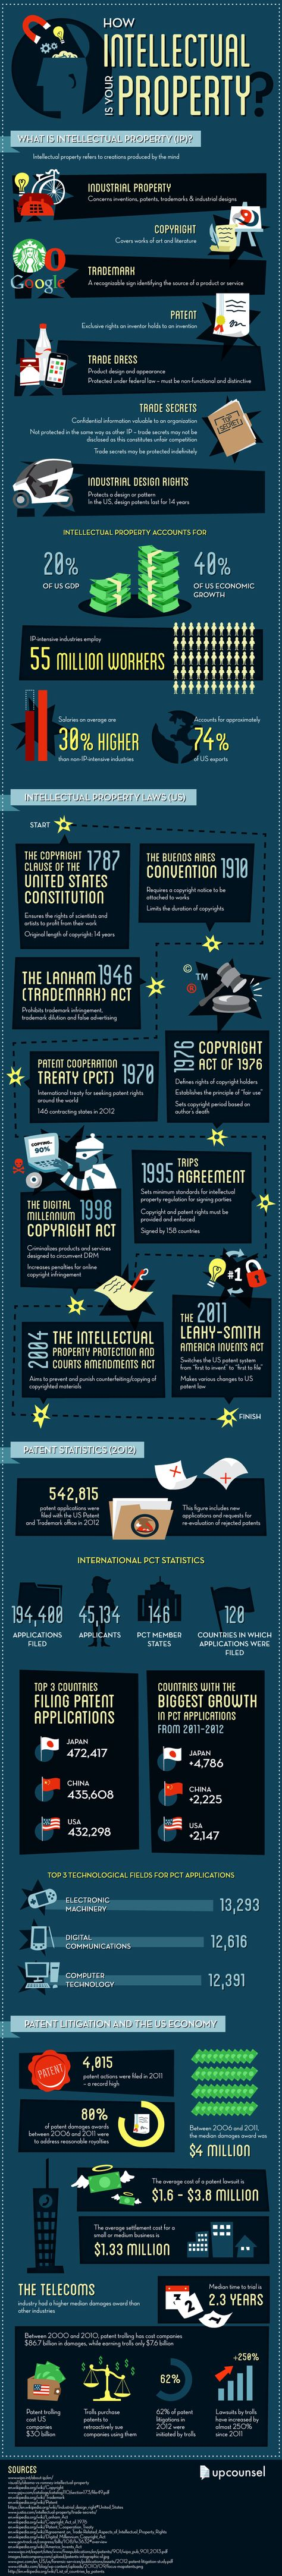 How Intellectual is Your Property [INFOGRAPHIC]?